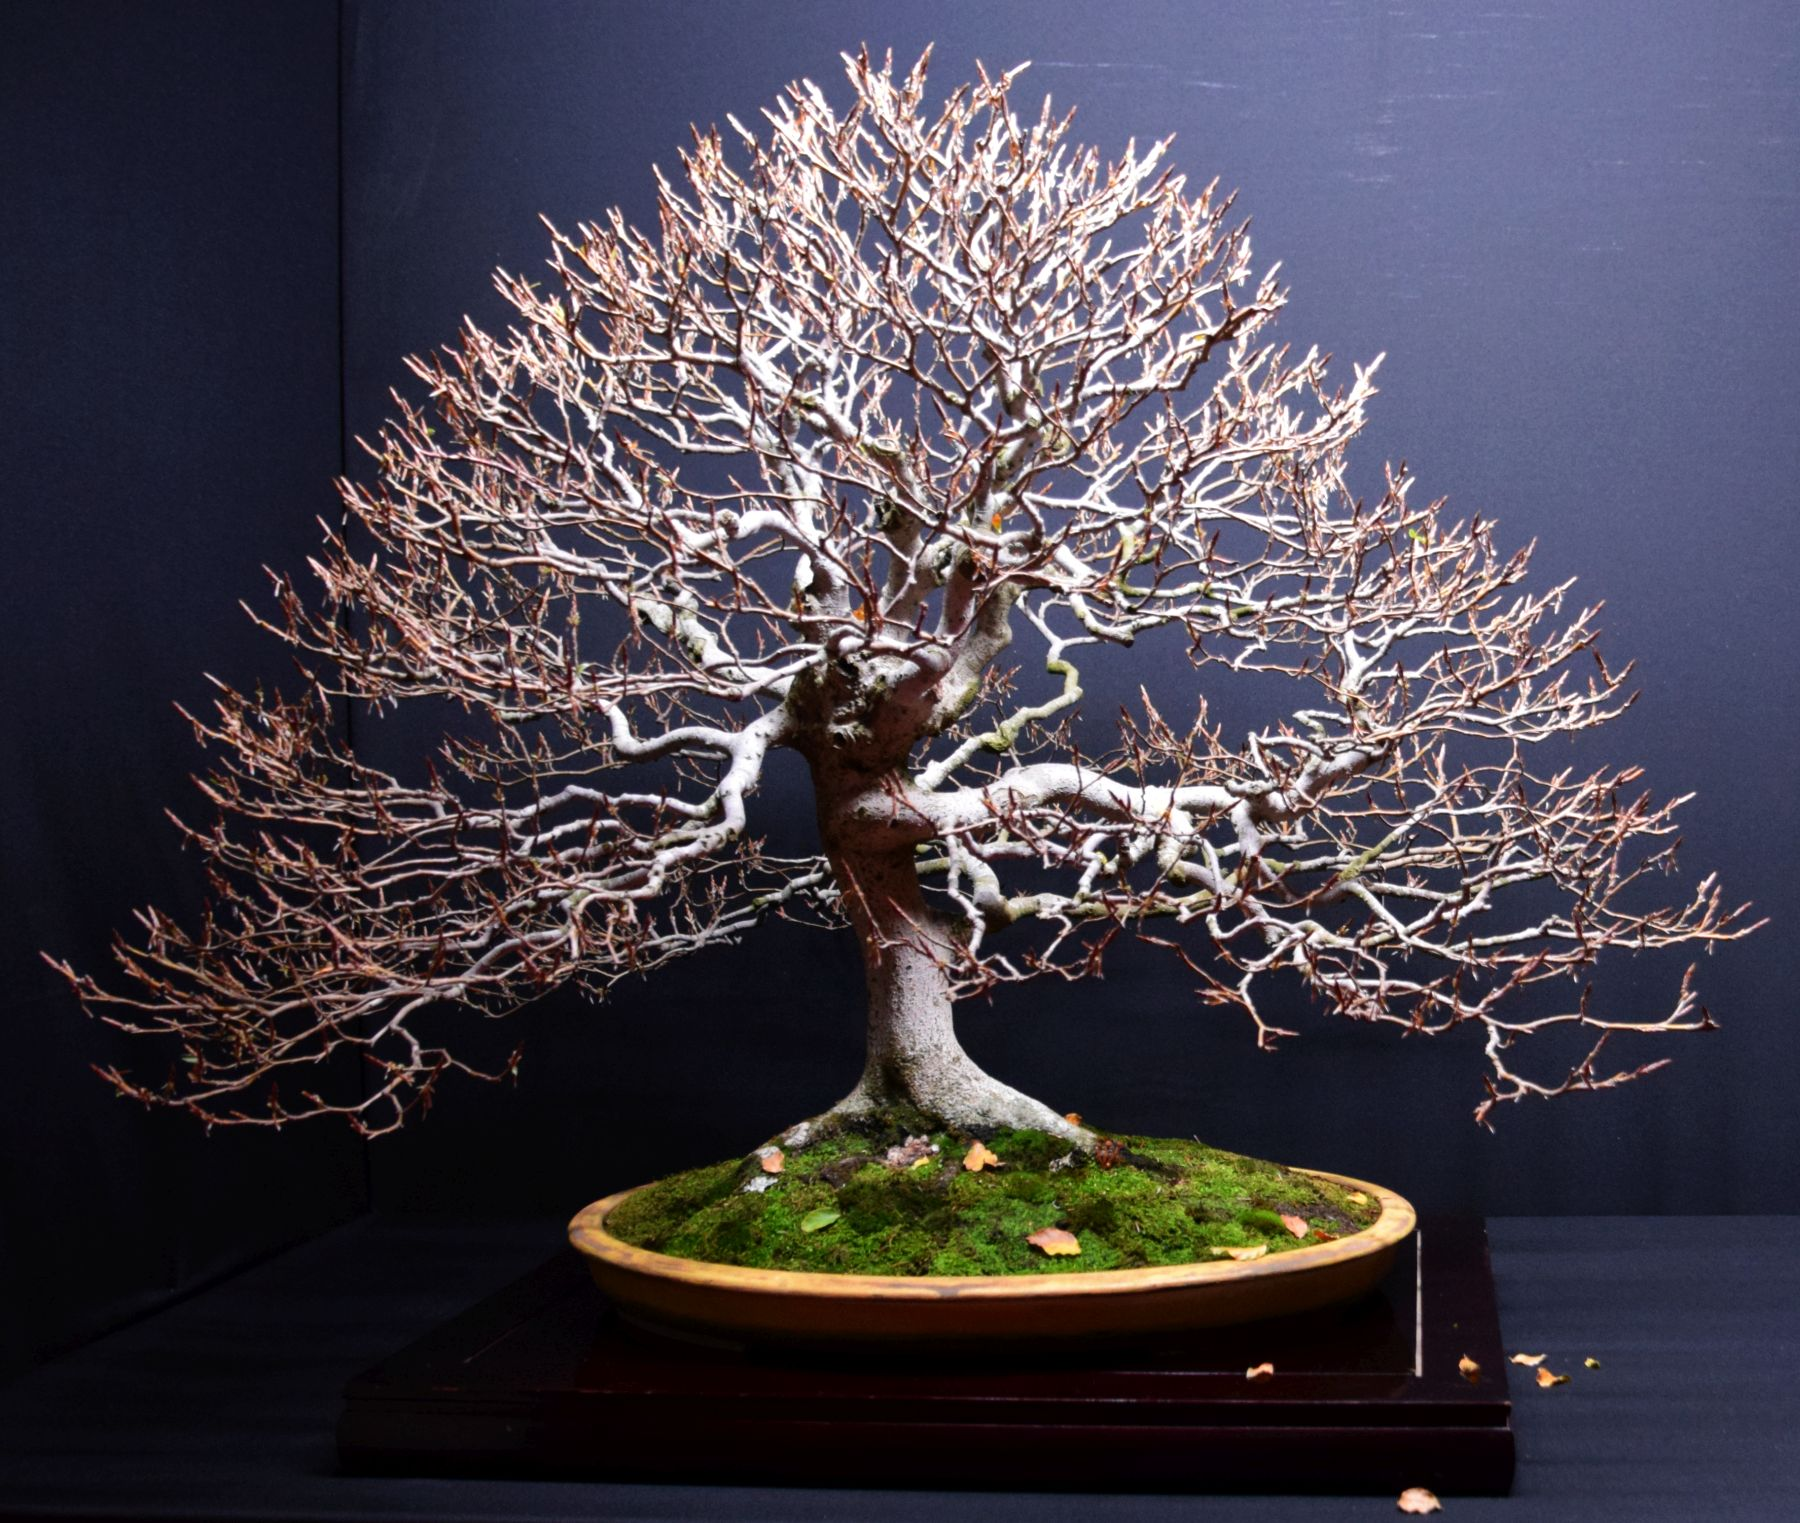 bonsai-museum-luis-vallejo-021